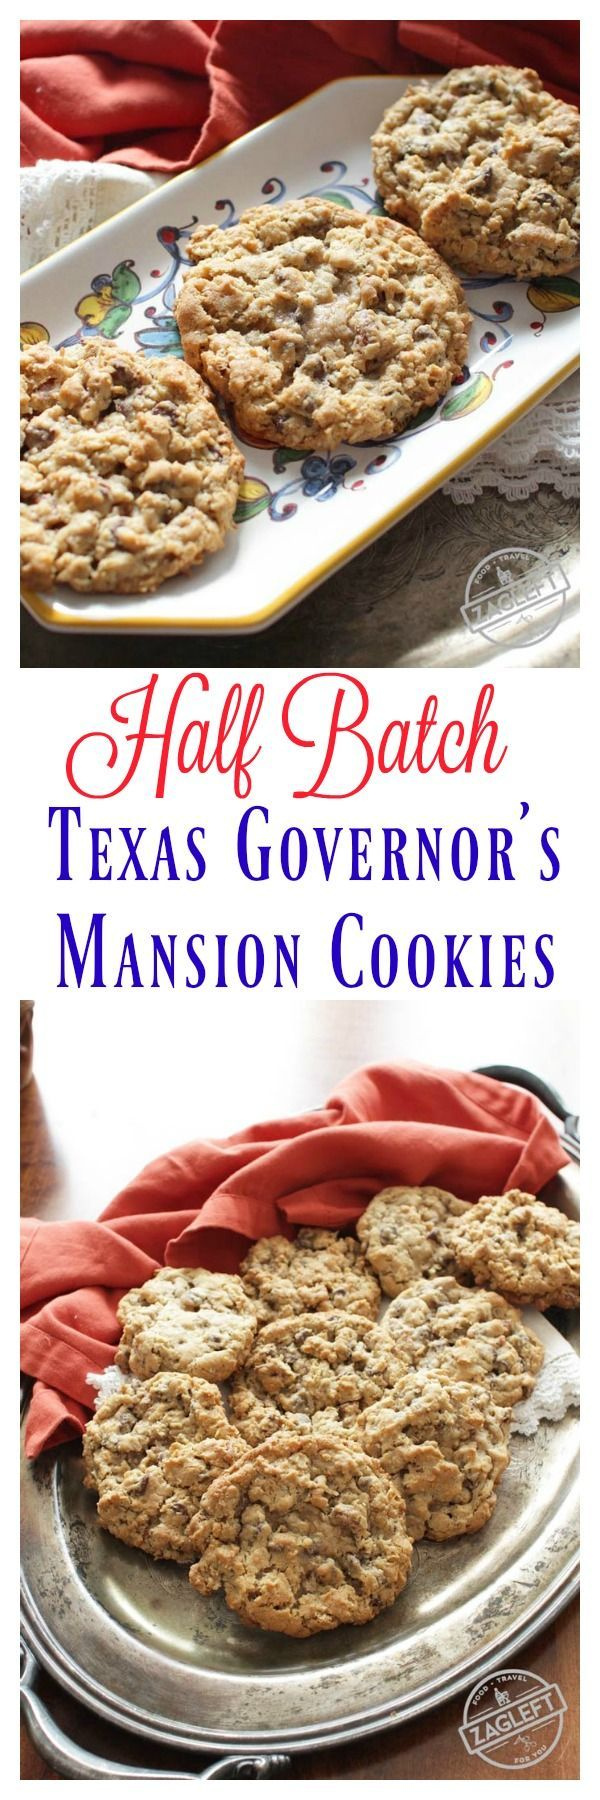 Half Batch Texas Governor's Mansion Cookies - loaded with chocolate chips, pecans, coconut and oats. A half batch of delicious cowboy cookies from ZagLeft